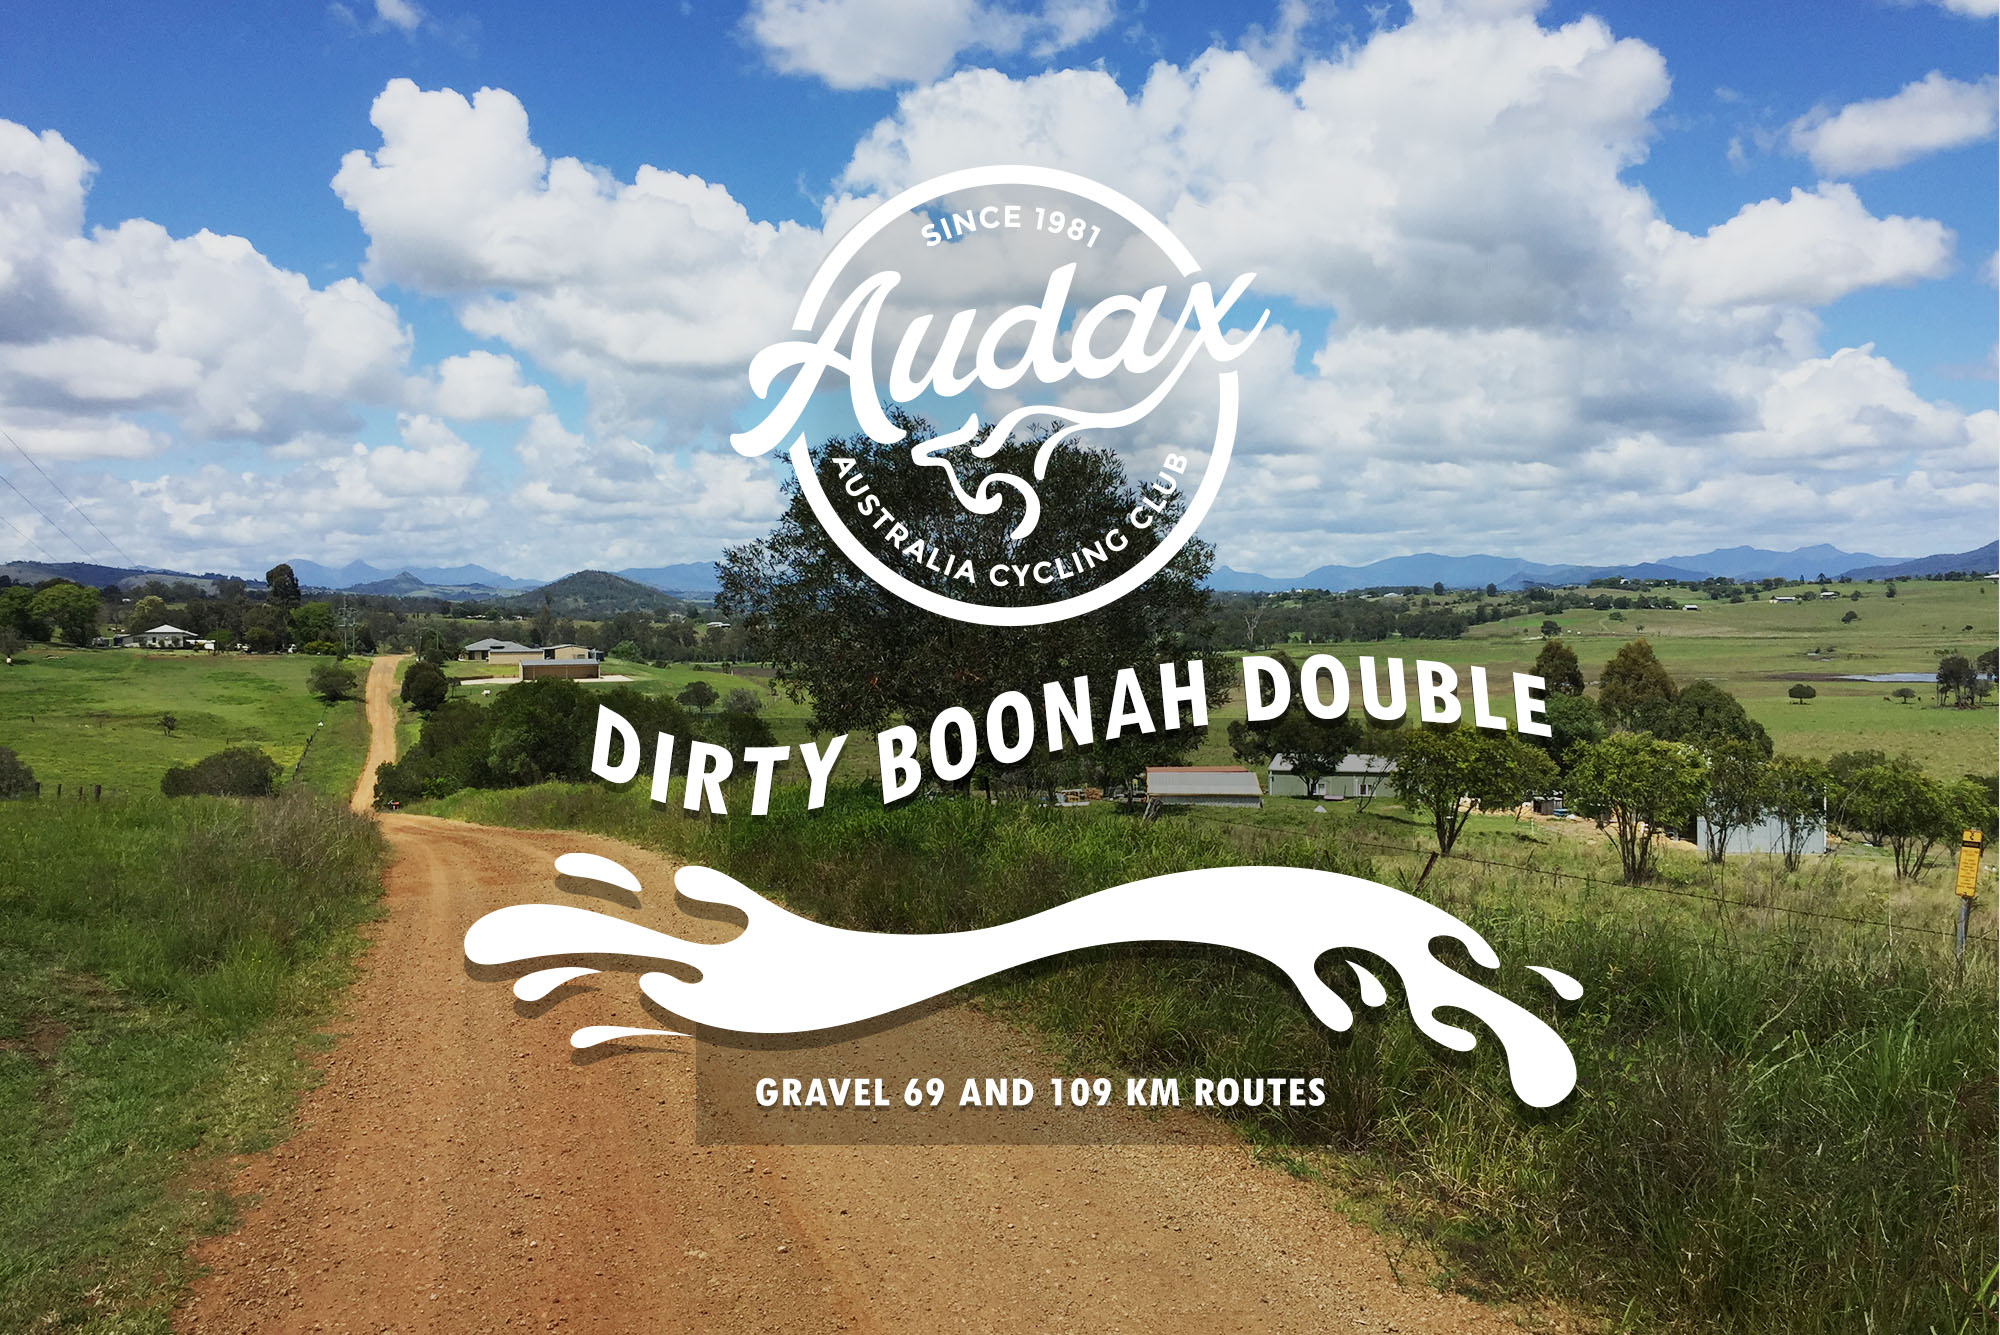 Dirty Boonah Double